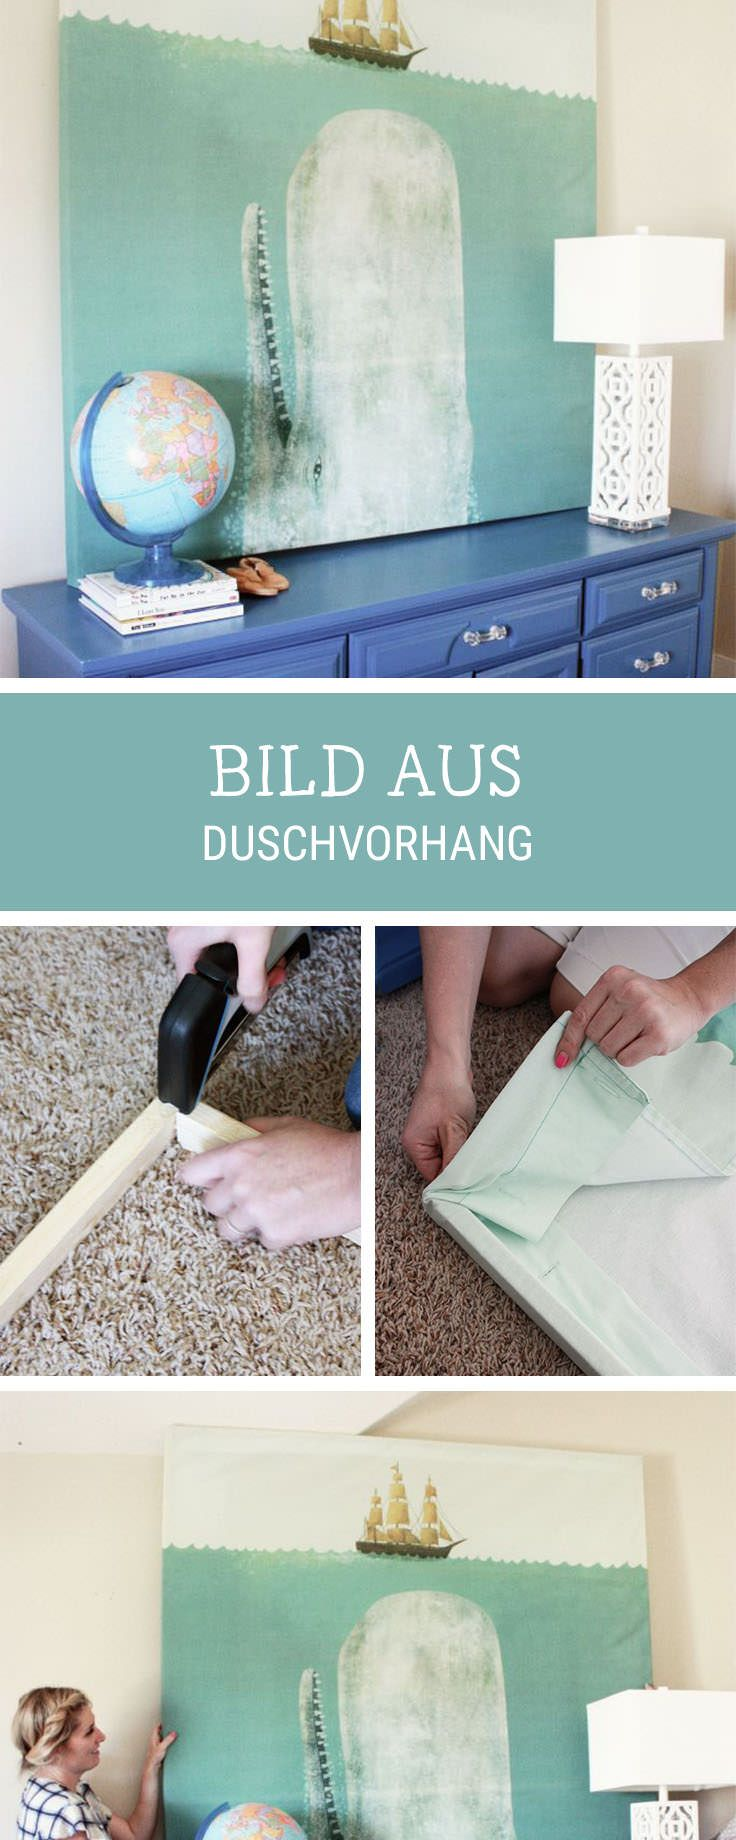 Einfaches DIY für Dein Zuhause: Duschvorhang in ein XXL-Bild umwandeln / easy diy tutorial: turn a shower curtain into an overszied picture for your wall via DaWanda.com